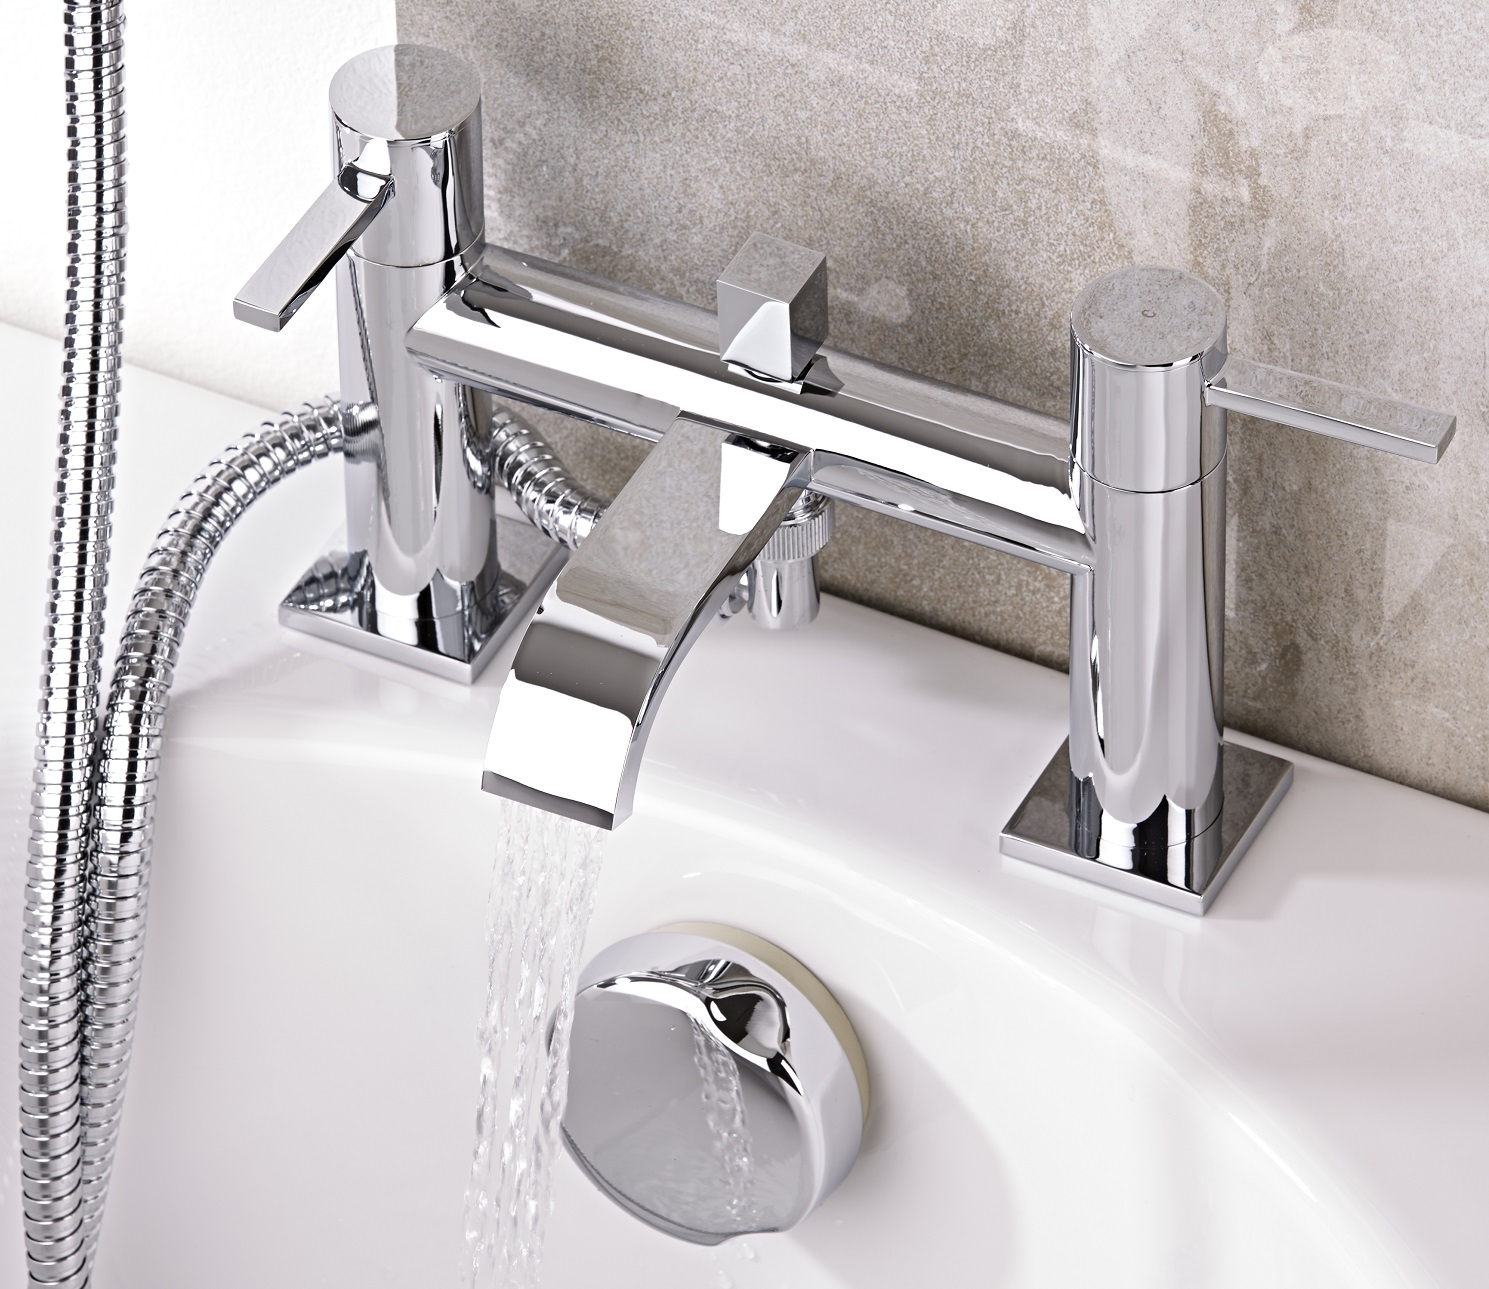 chrome bath tap with water pouring from spout